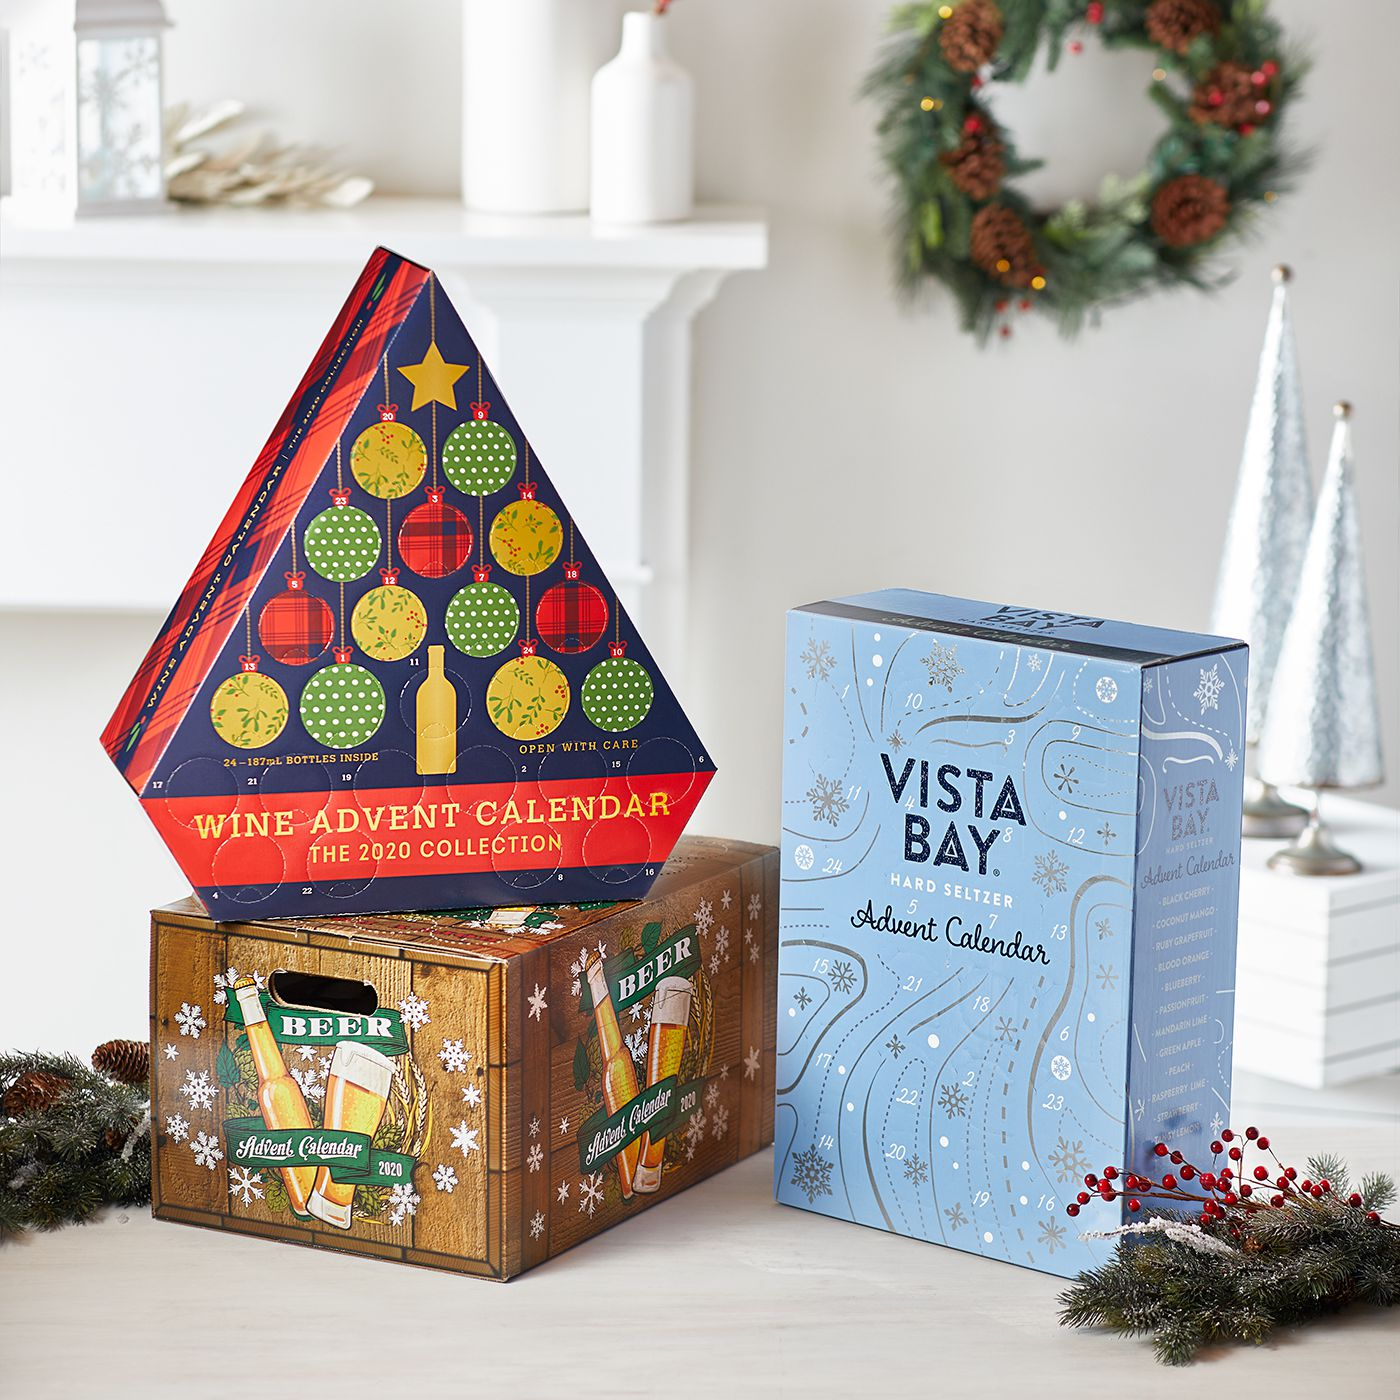 Aldi Christmas Eve Hours 2020 Aldi's 2020 Advent calendar collection featuring wine, beer